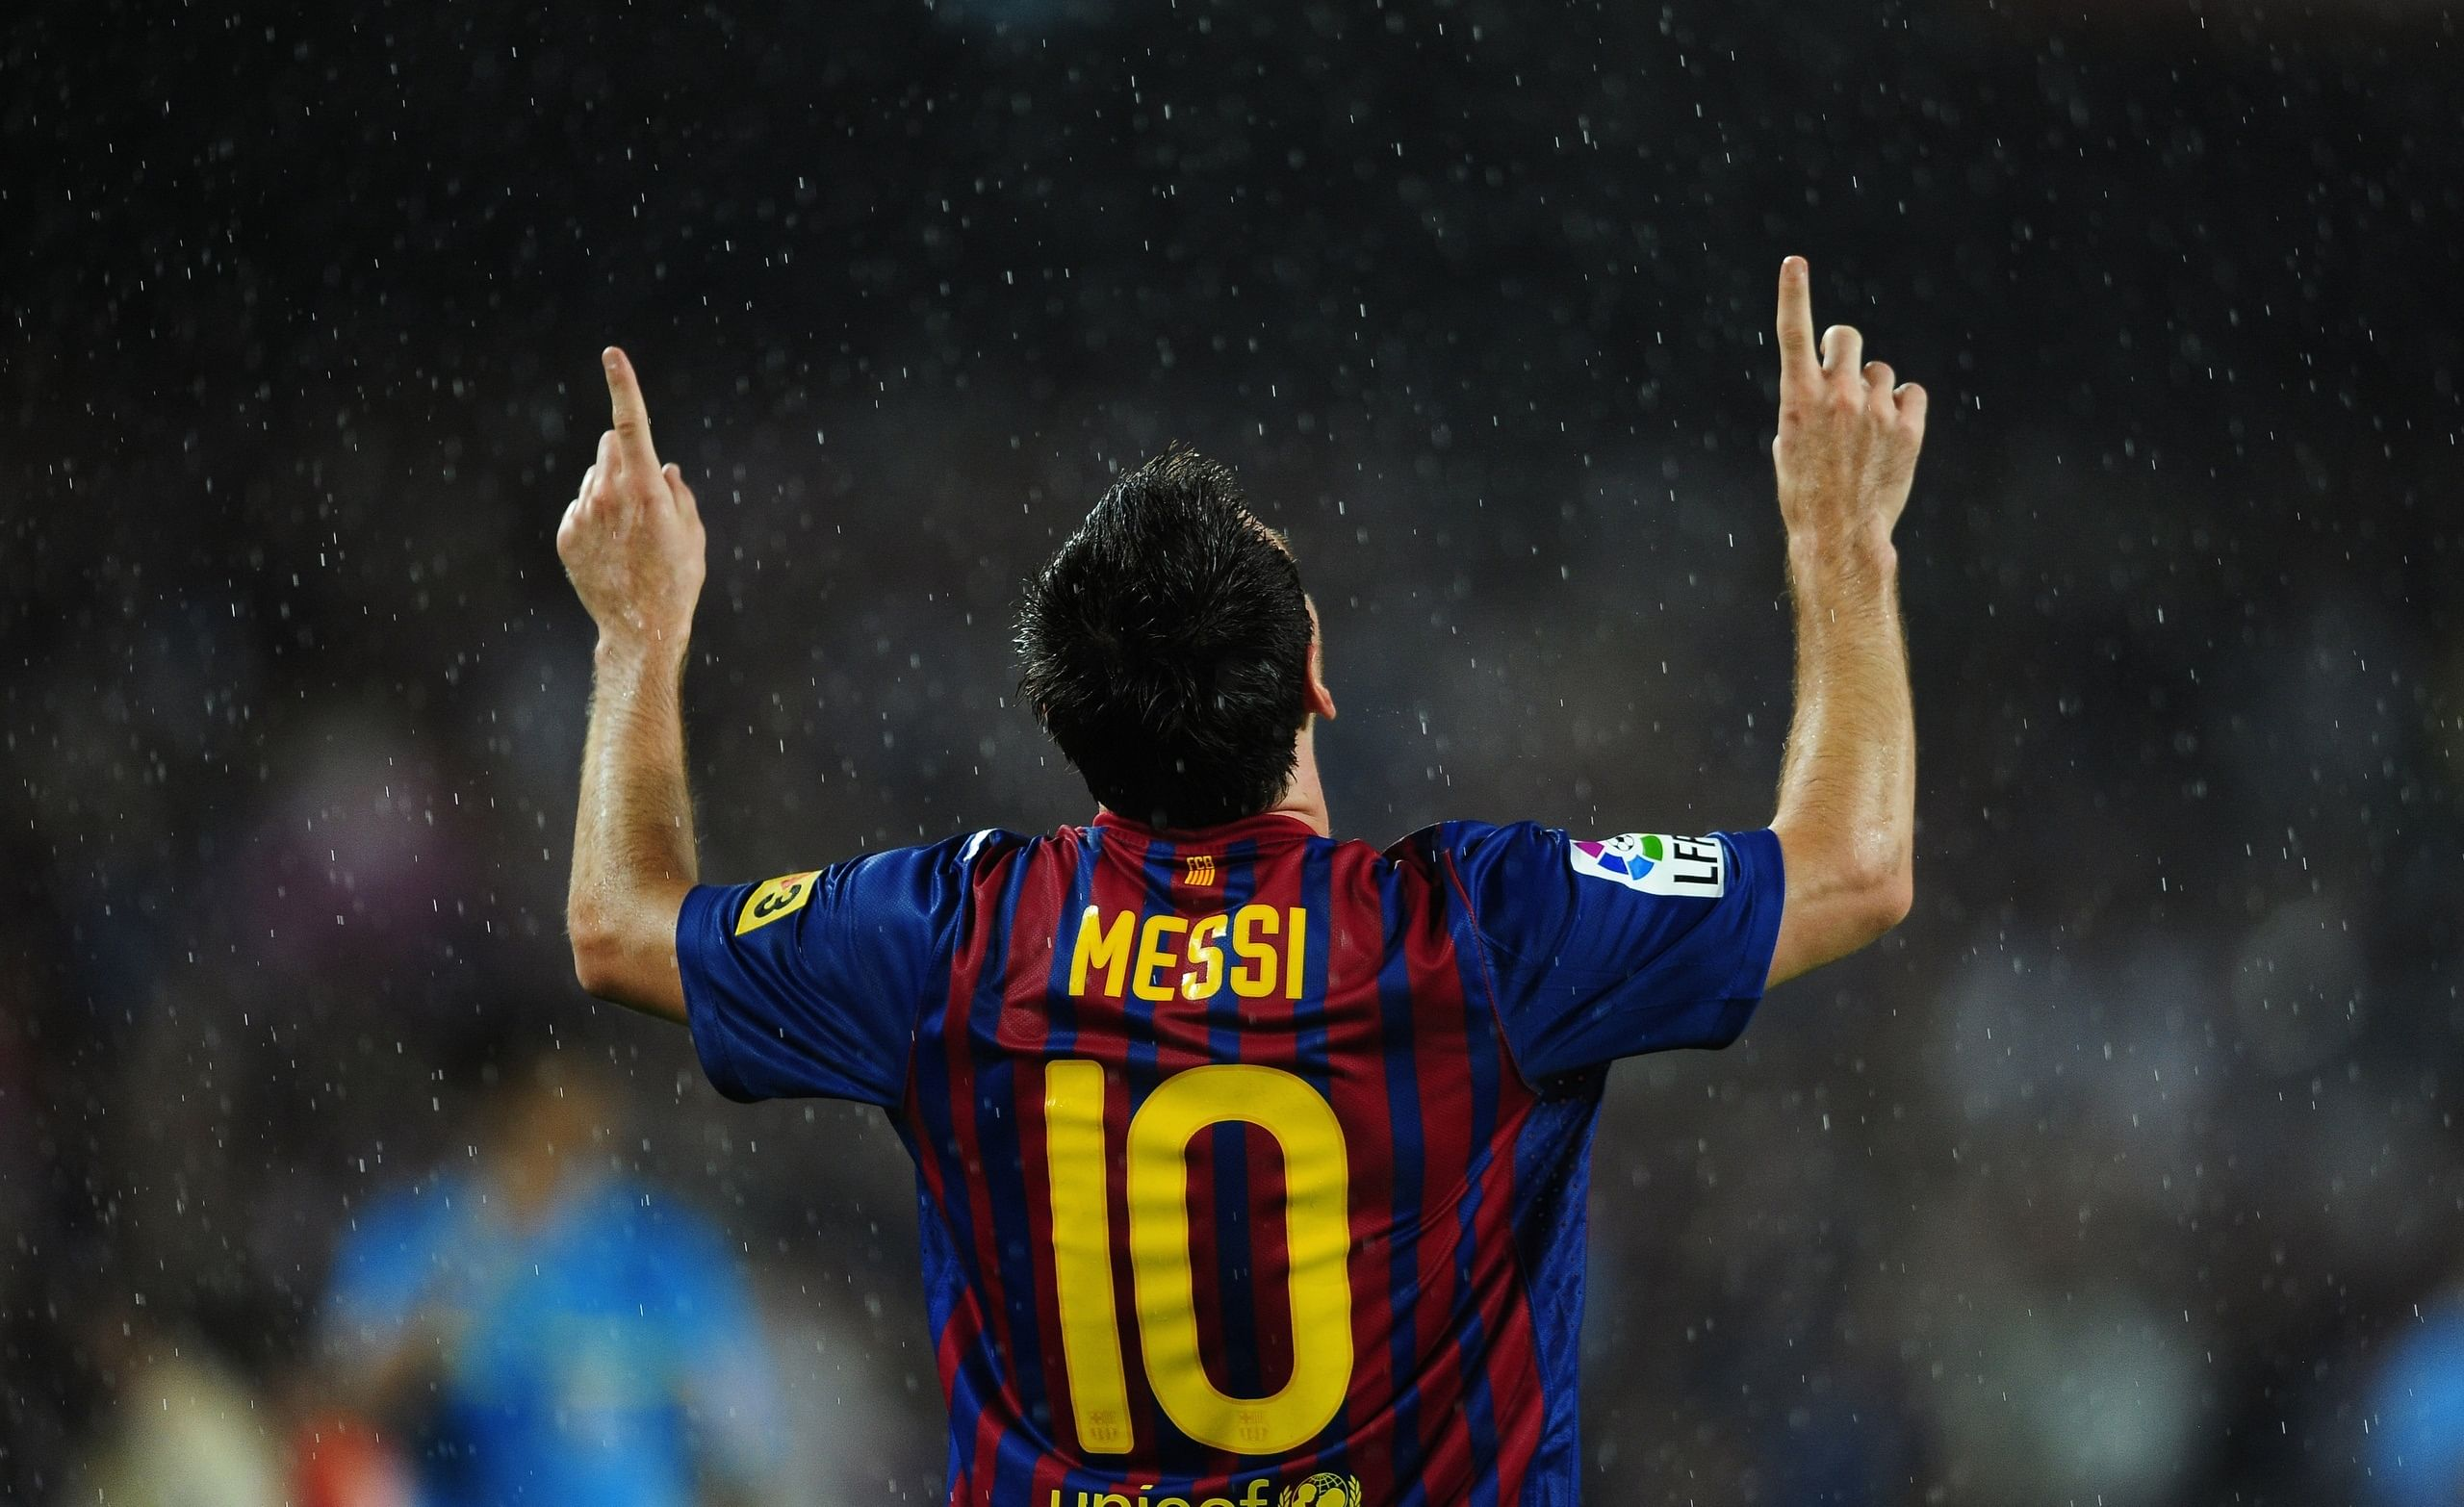 Lionel Messi v2.0 – Could he score less and possibly become more effective?